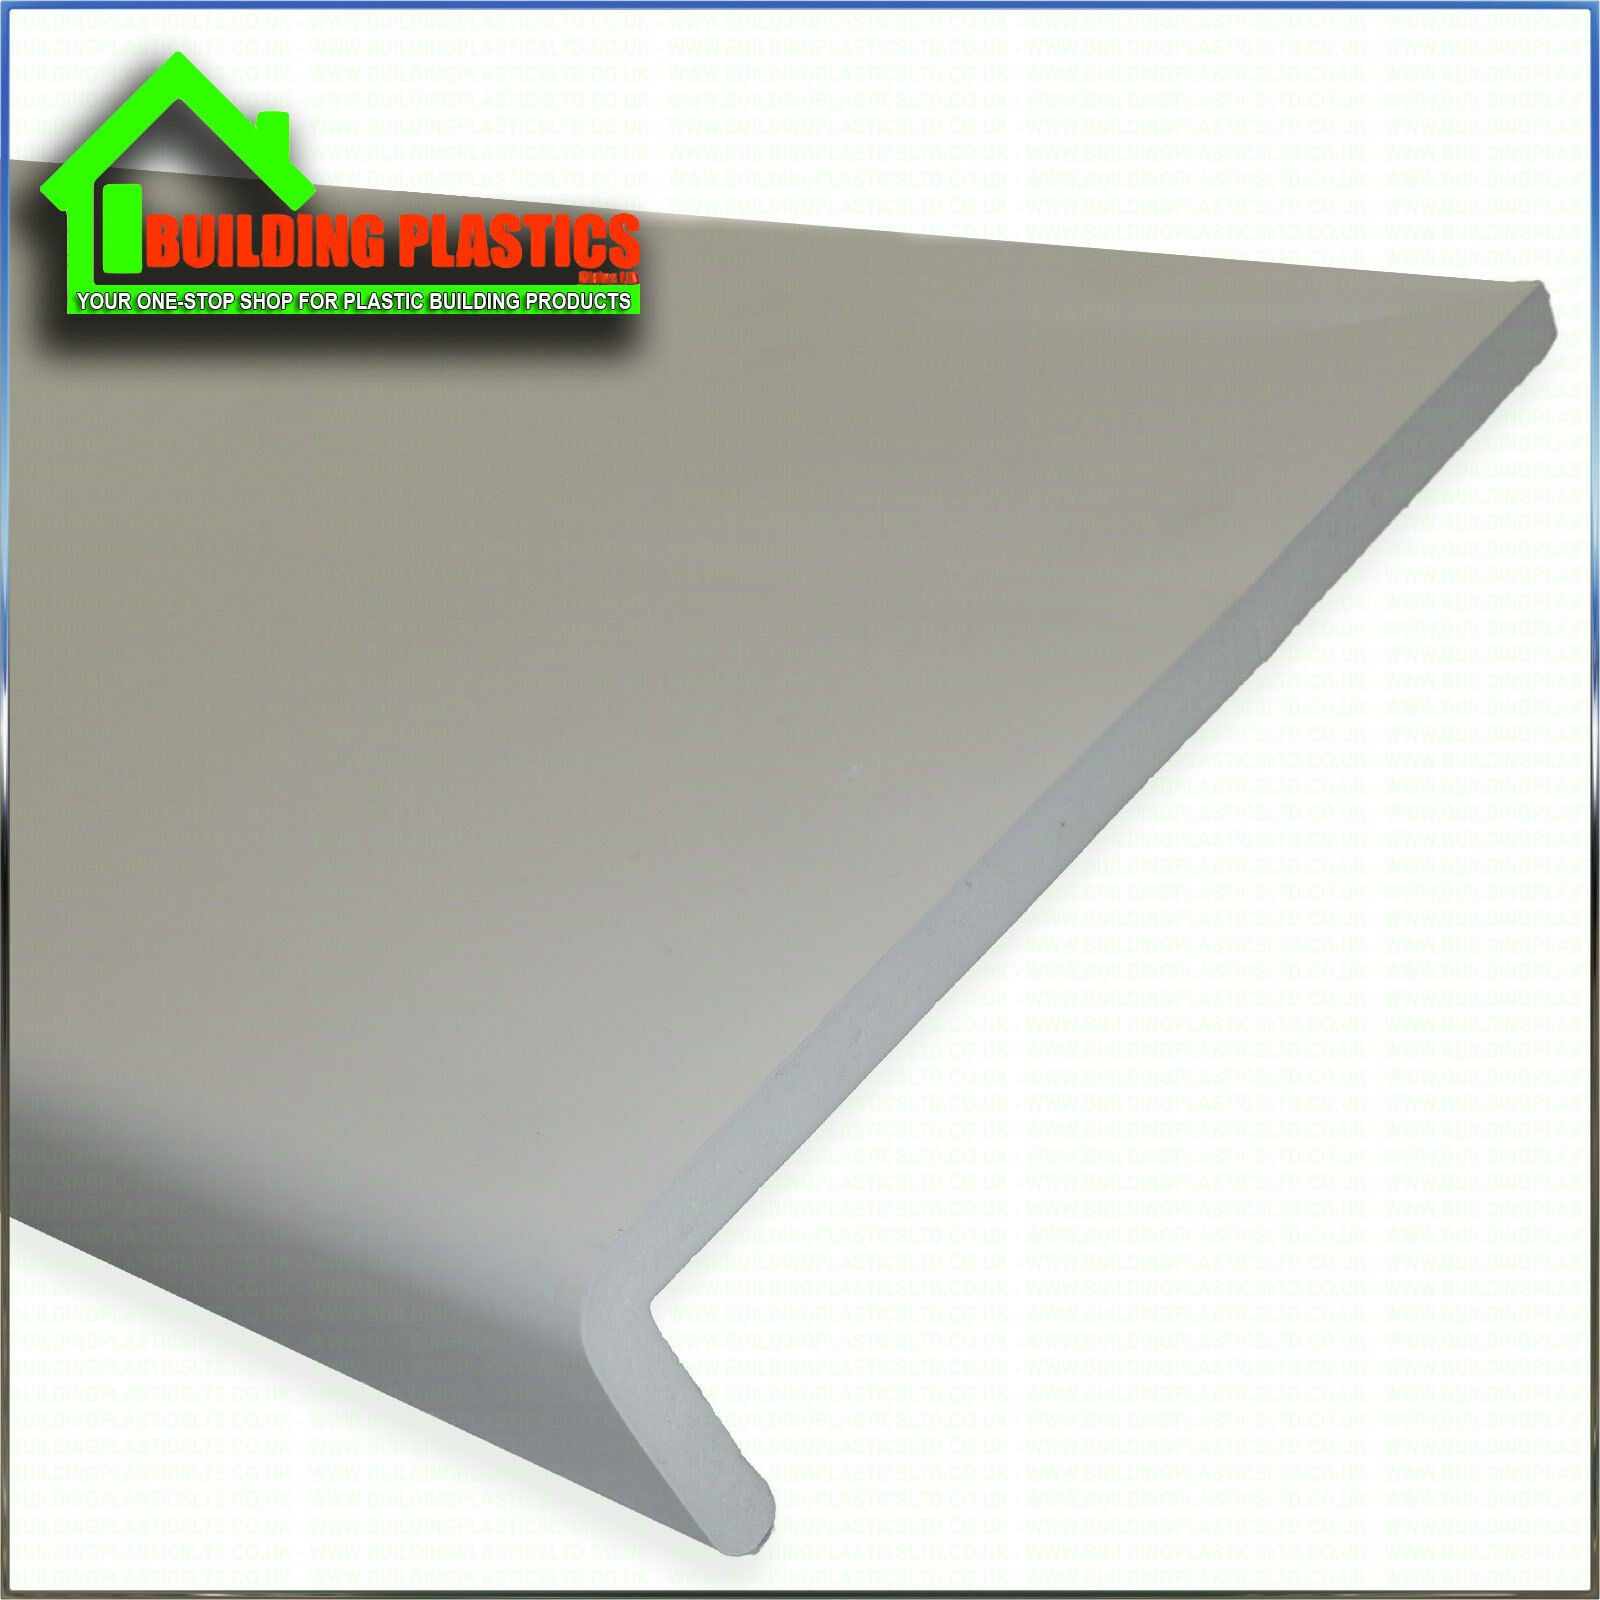 Upvc Fascia Board Cover 150mm To 300mm Fascia Capping